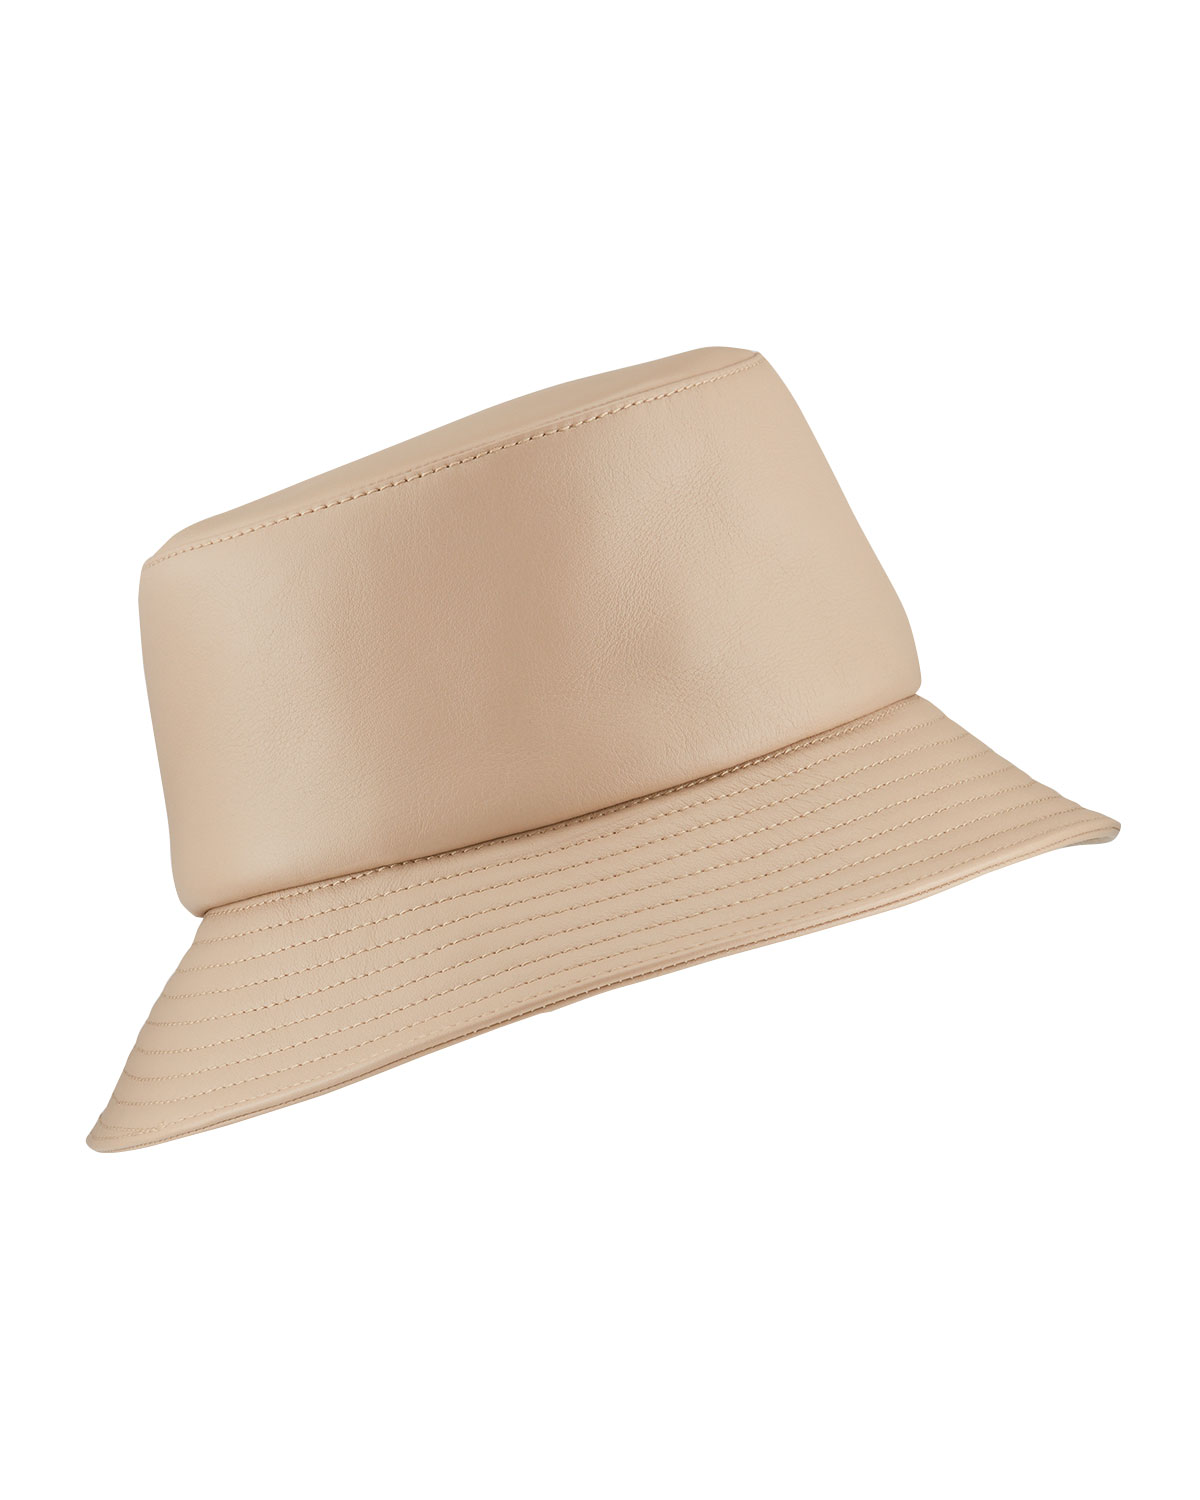 Helen Kaminski ORIANNA LEATHER BUCKET HAT